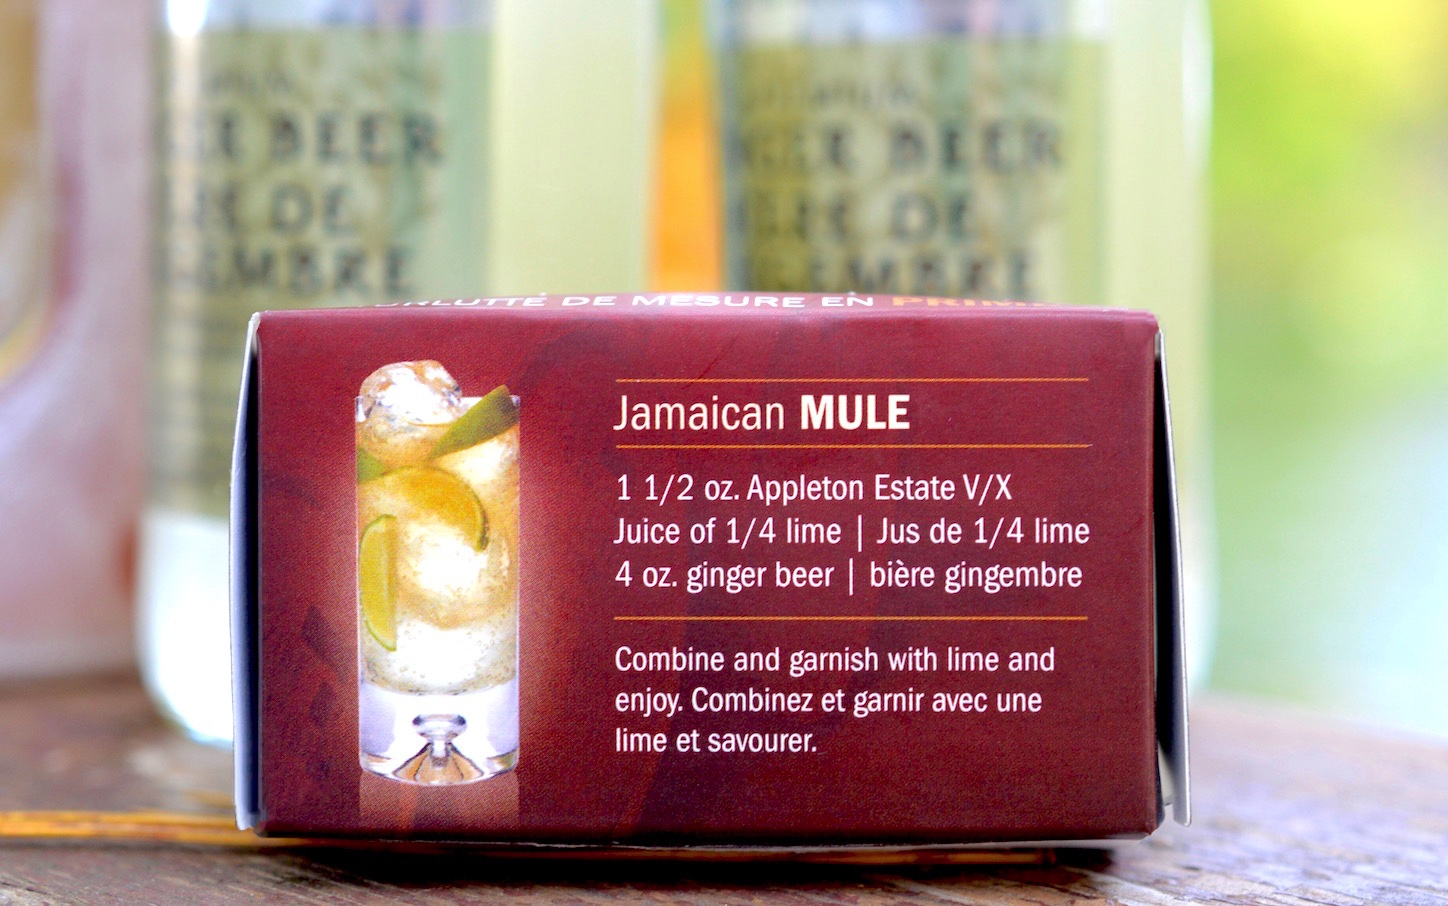 Jamaican  mule recipe